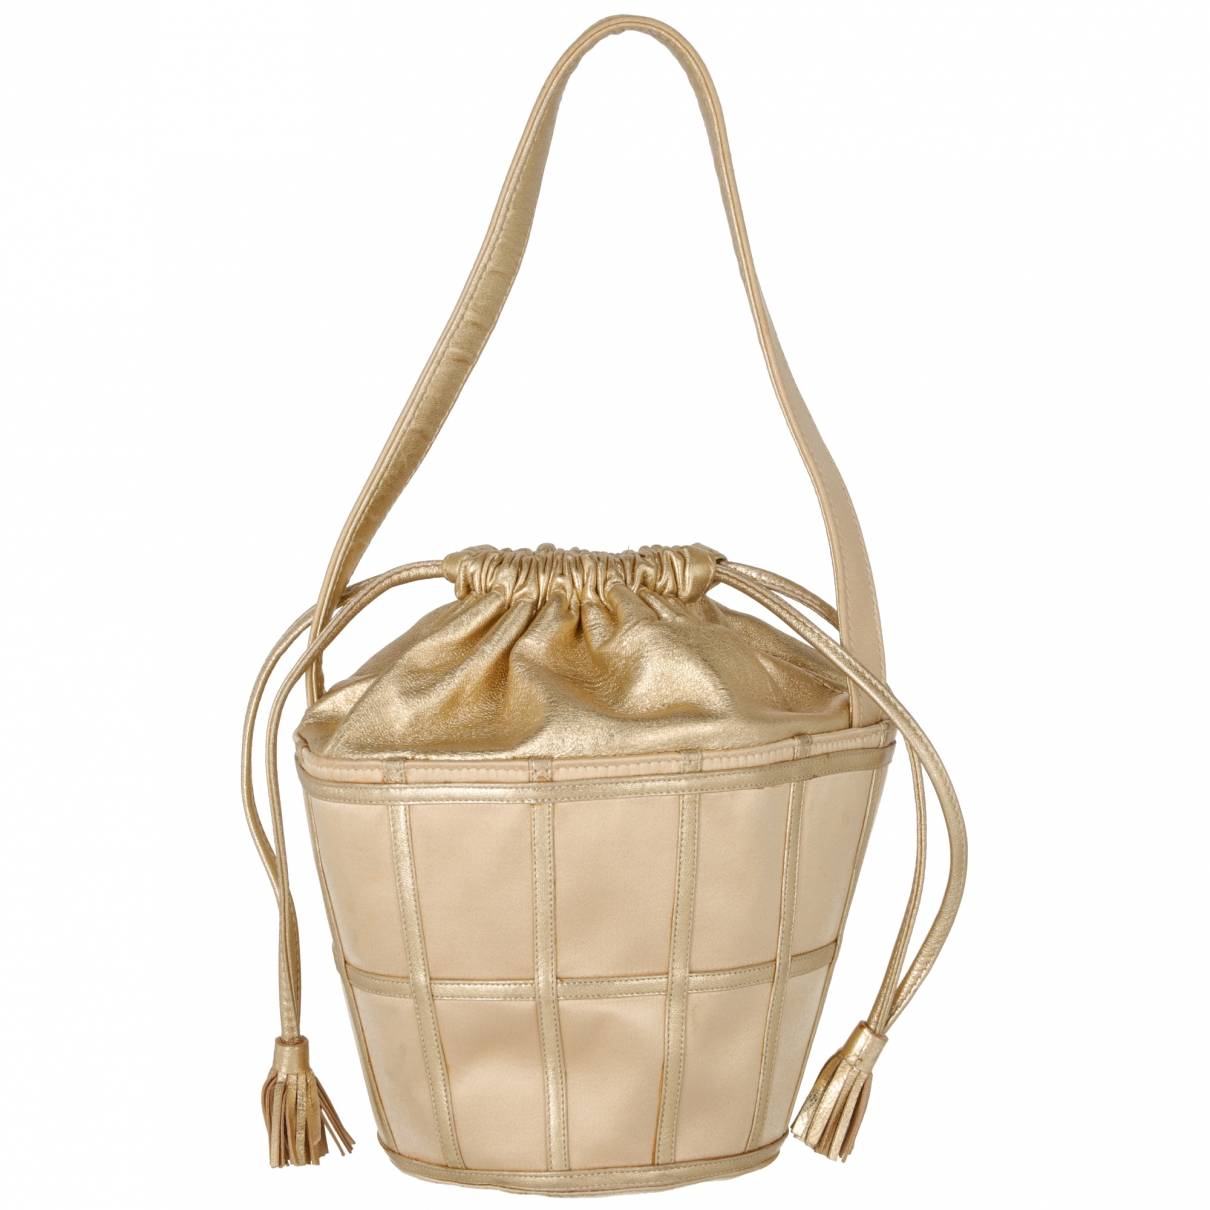 Rene Caovilla \N Gold Leather handbag for Women \N